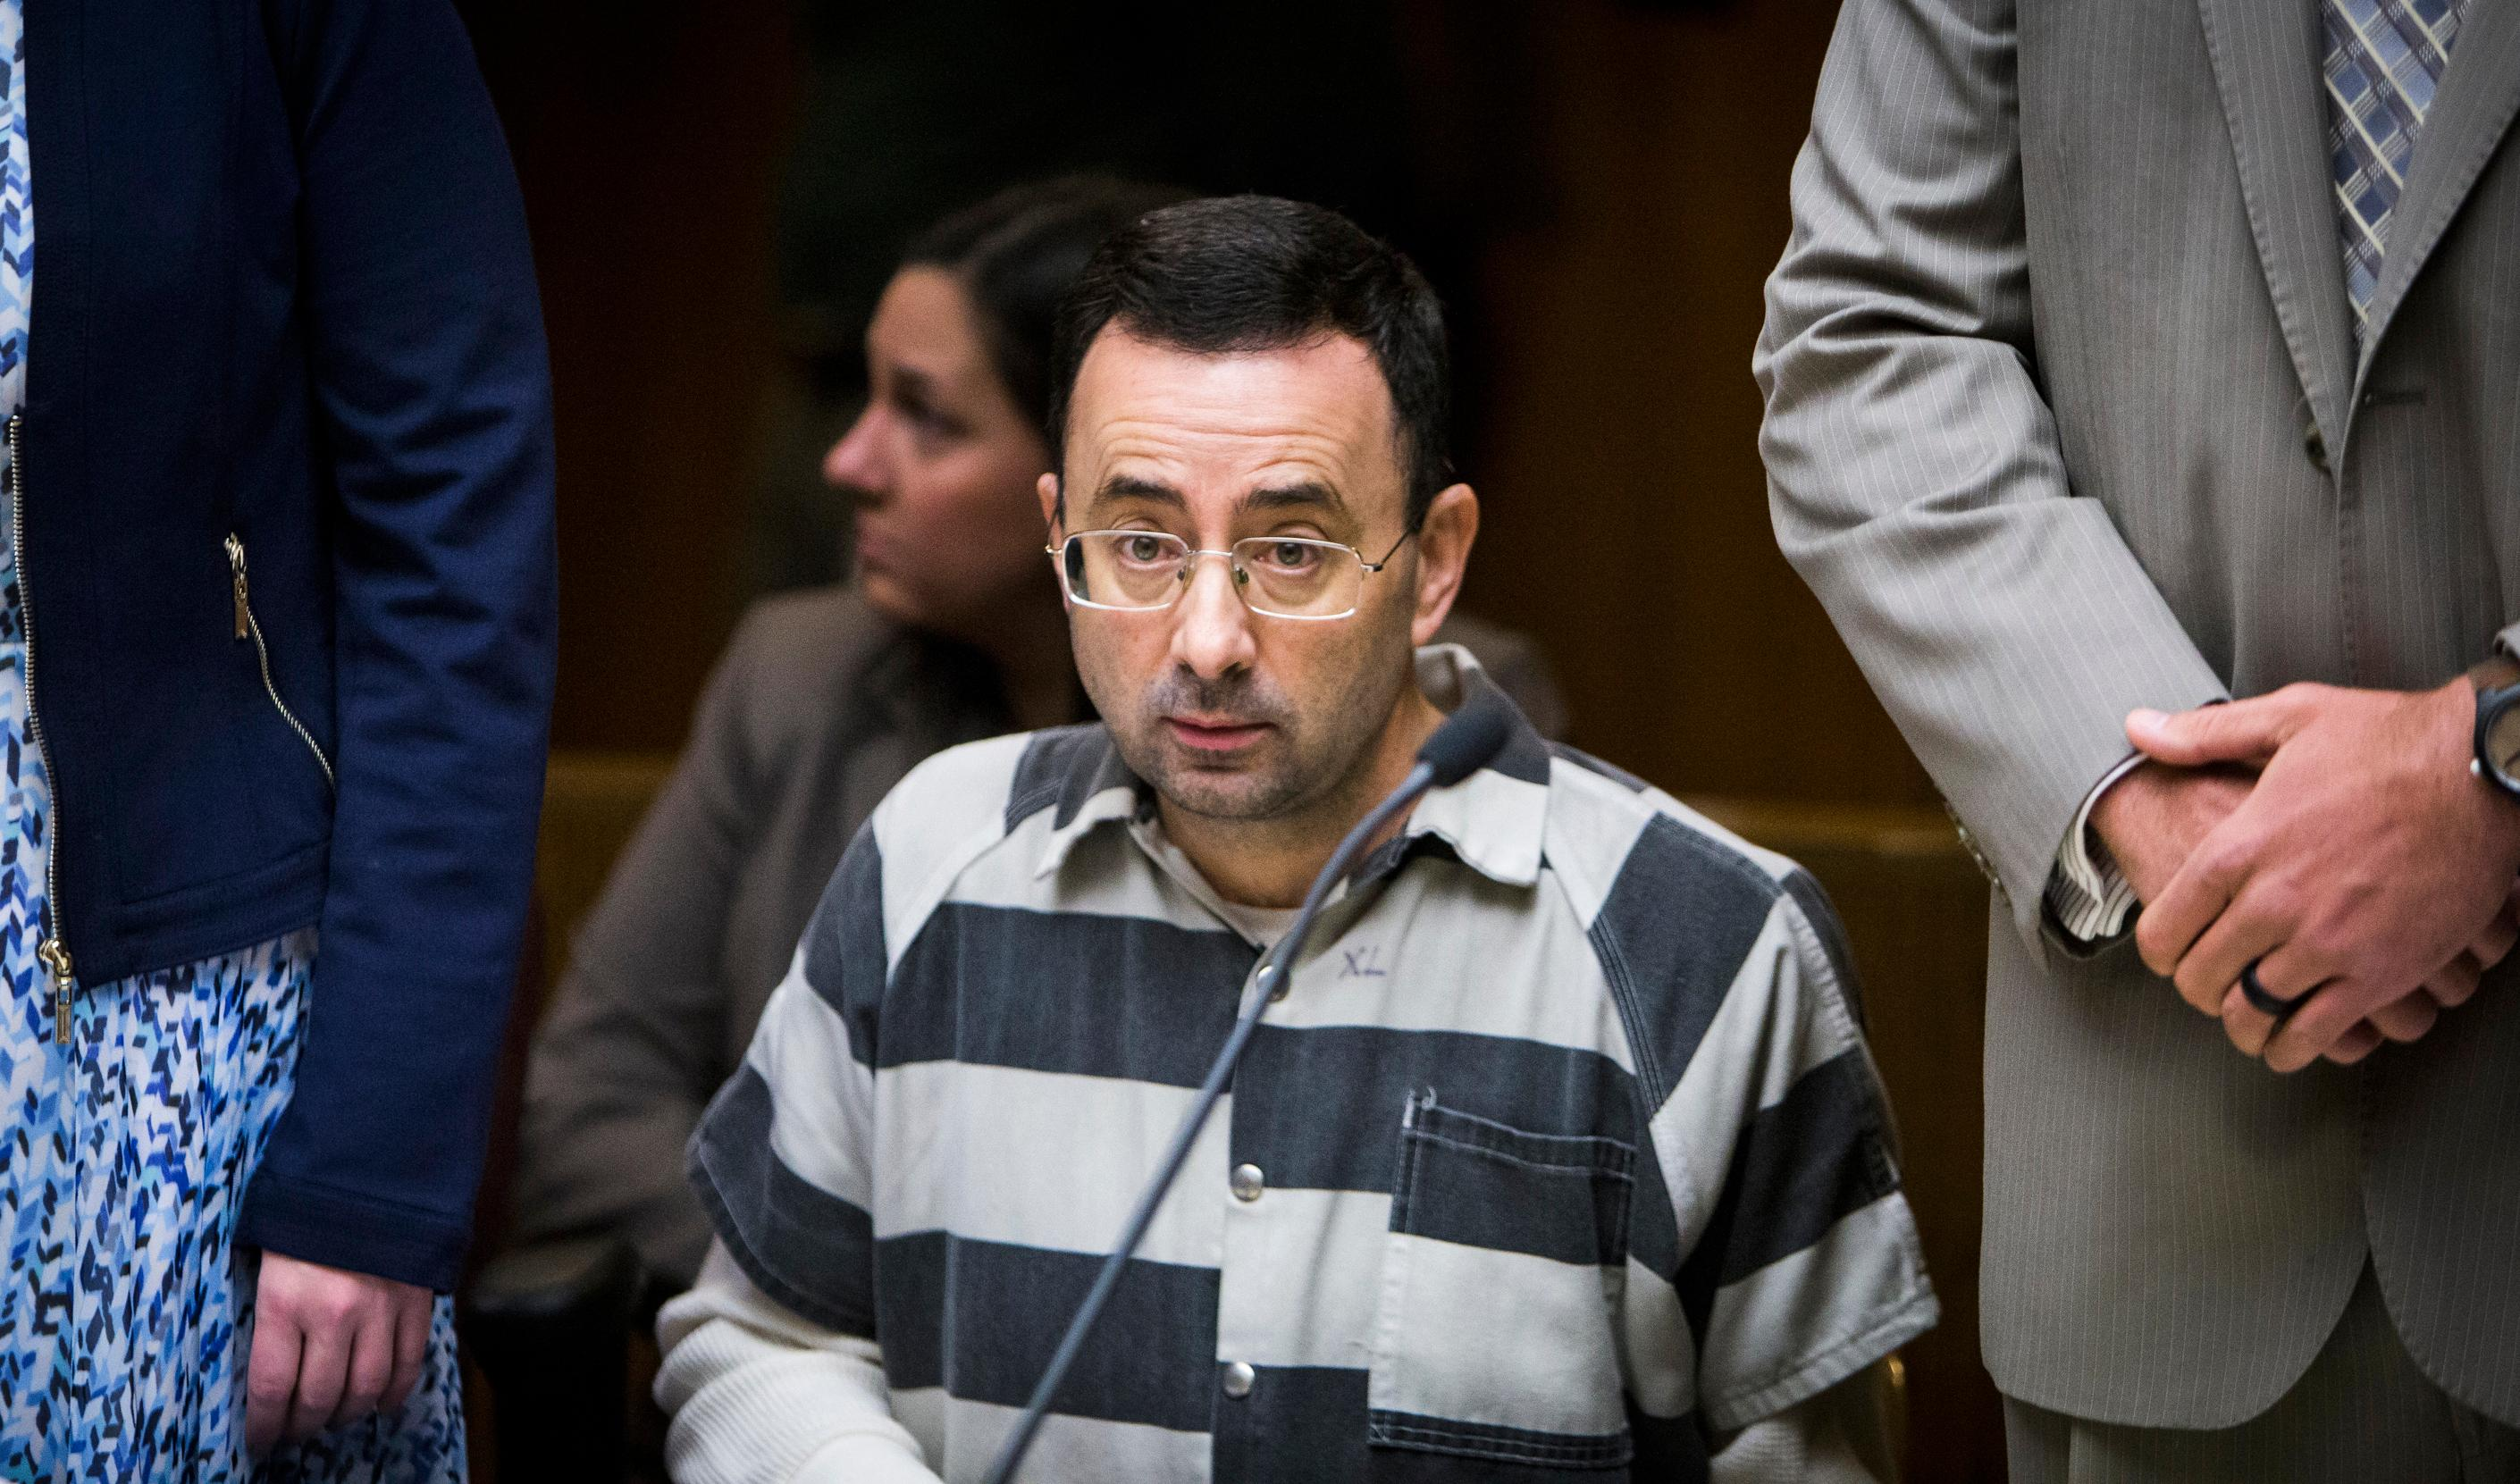 Dr. Larry Nassar listens during a preliminary hearing Friday, May 12, 2017, in Mason, Mich.. Nassar, a former Michigan State University doctor who also worked for USA Gymnastics, faces sexual assault charges charges. (Matthew Dae Smith/Lansing State Journal via AP)